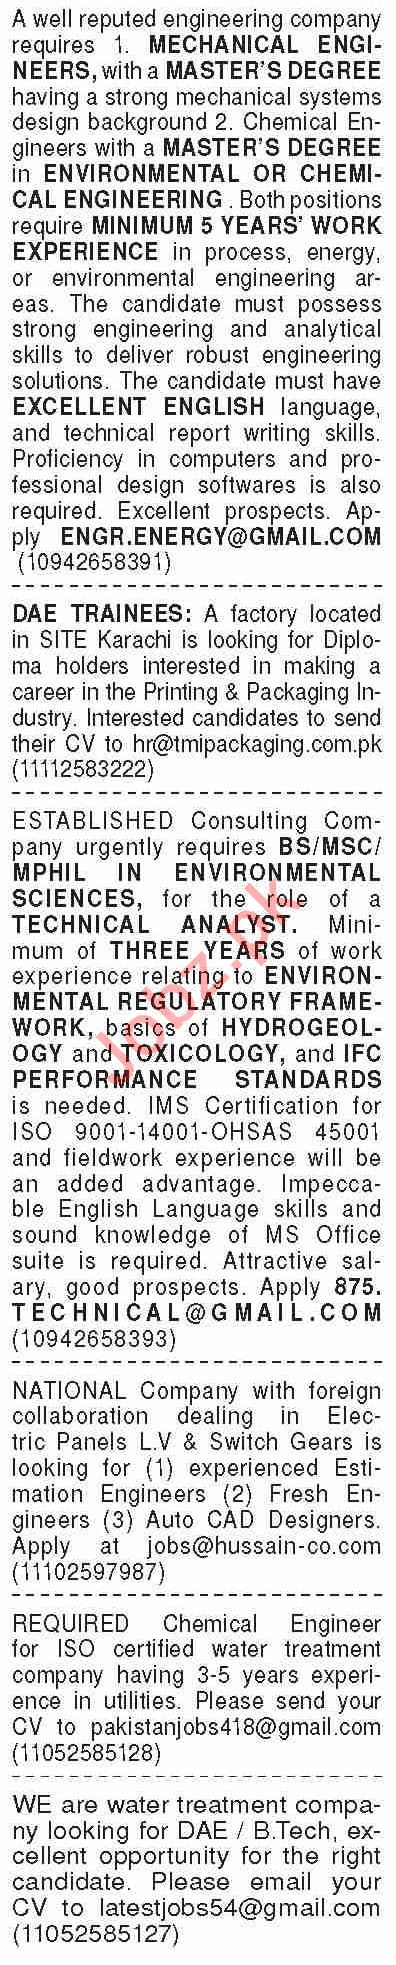 Dawn Sunday Classified Ads 18 April 2021 for Engineering